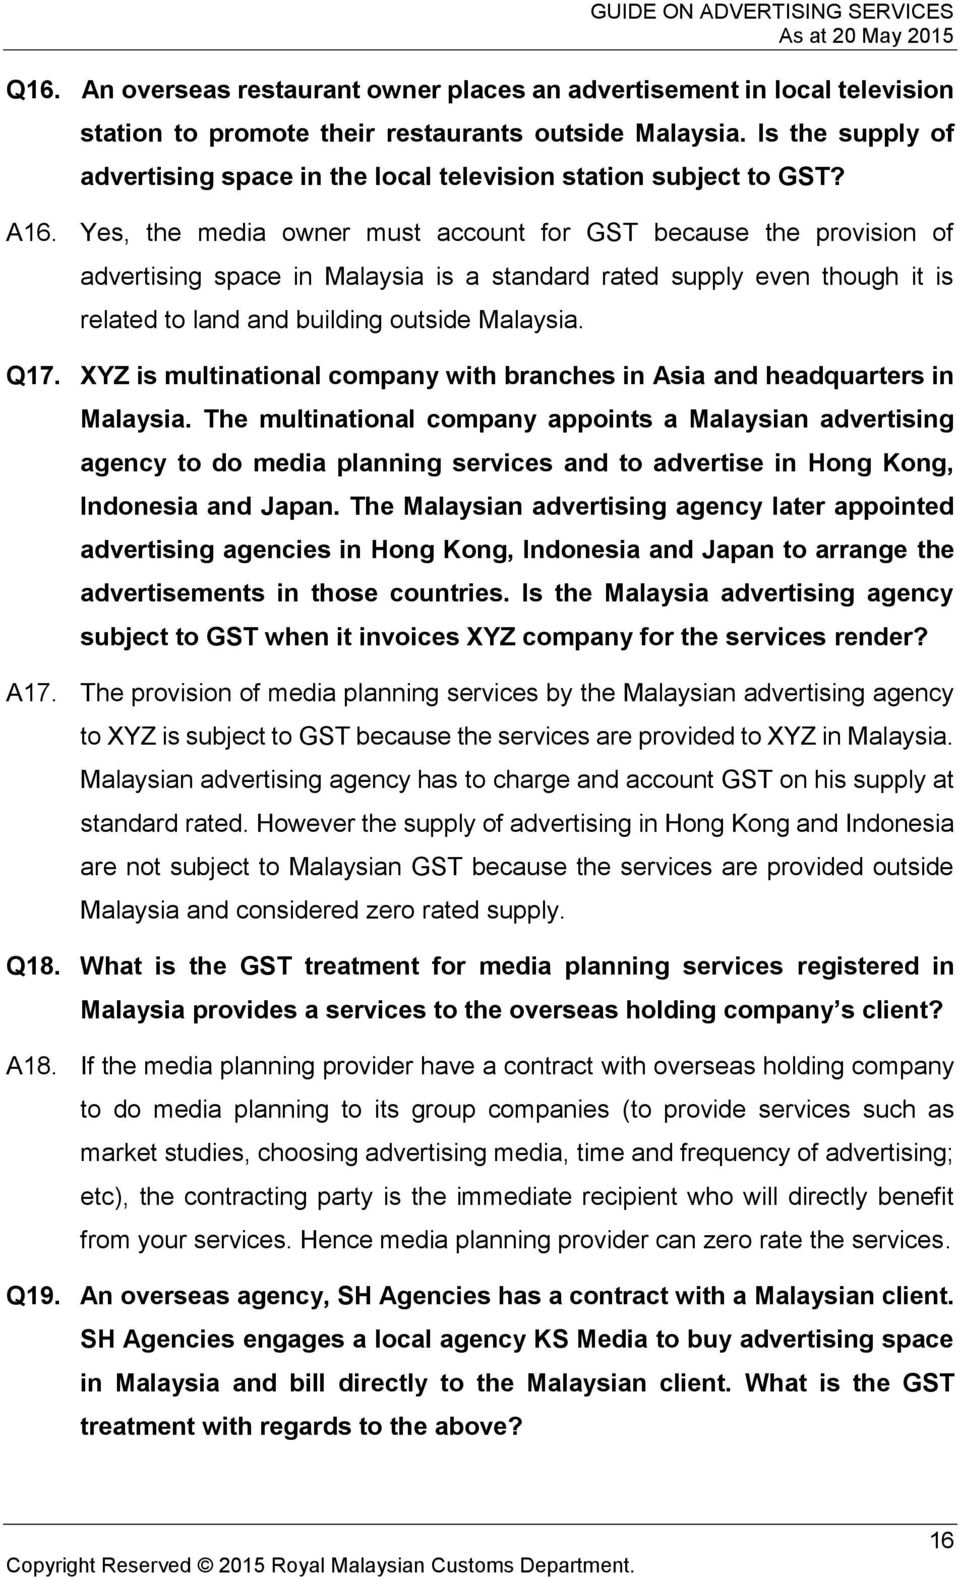 Yes, the media owner must account for GST because the provision of advertising space in Malaysia is a standard rated supply even though it is related to land and building outside Malaysia. Q17.